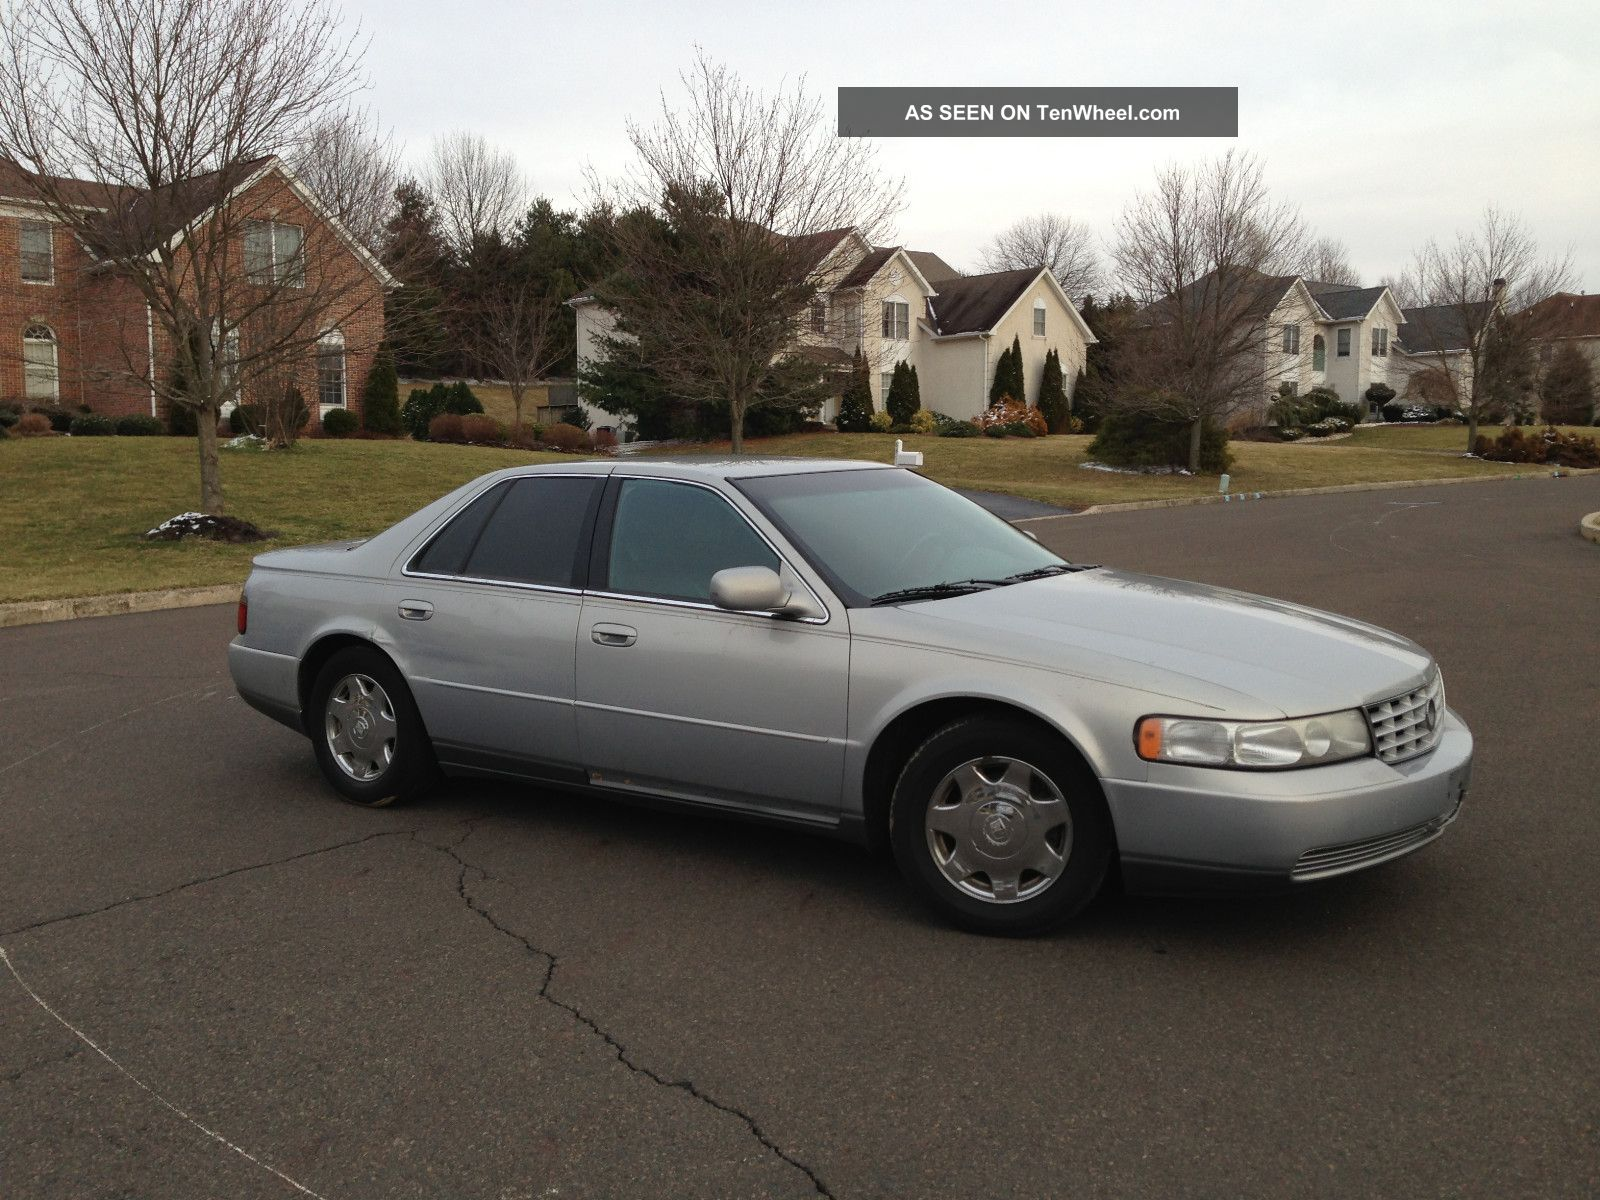 1998 Cadillac Seville Sls Sedan 4 Door 4 6l